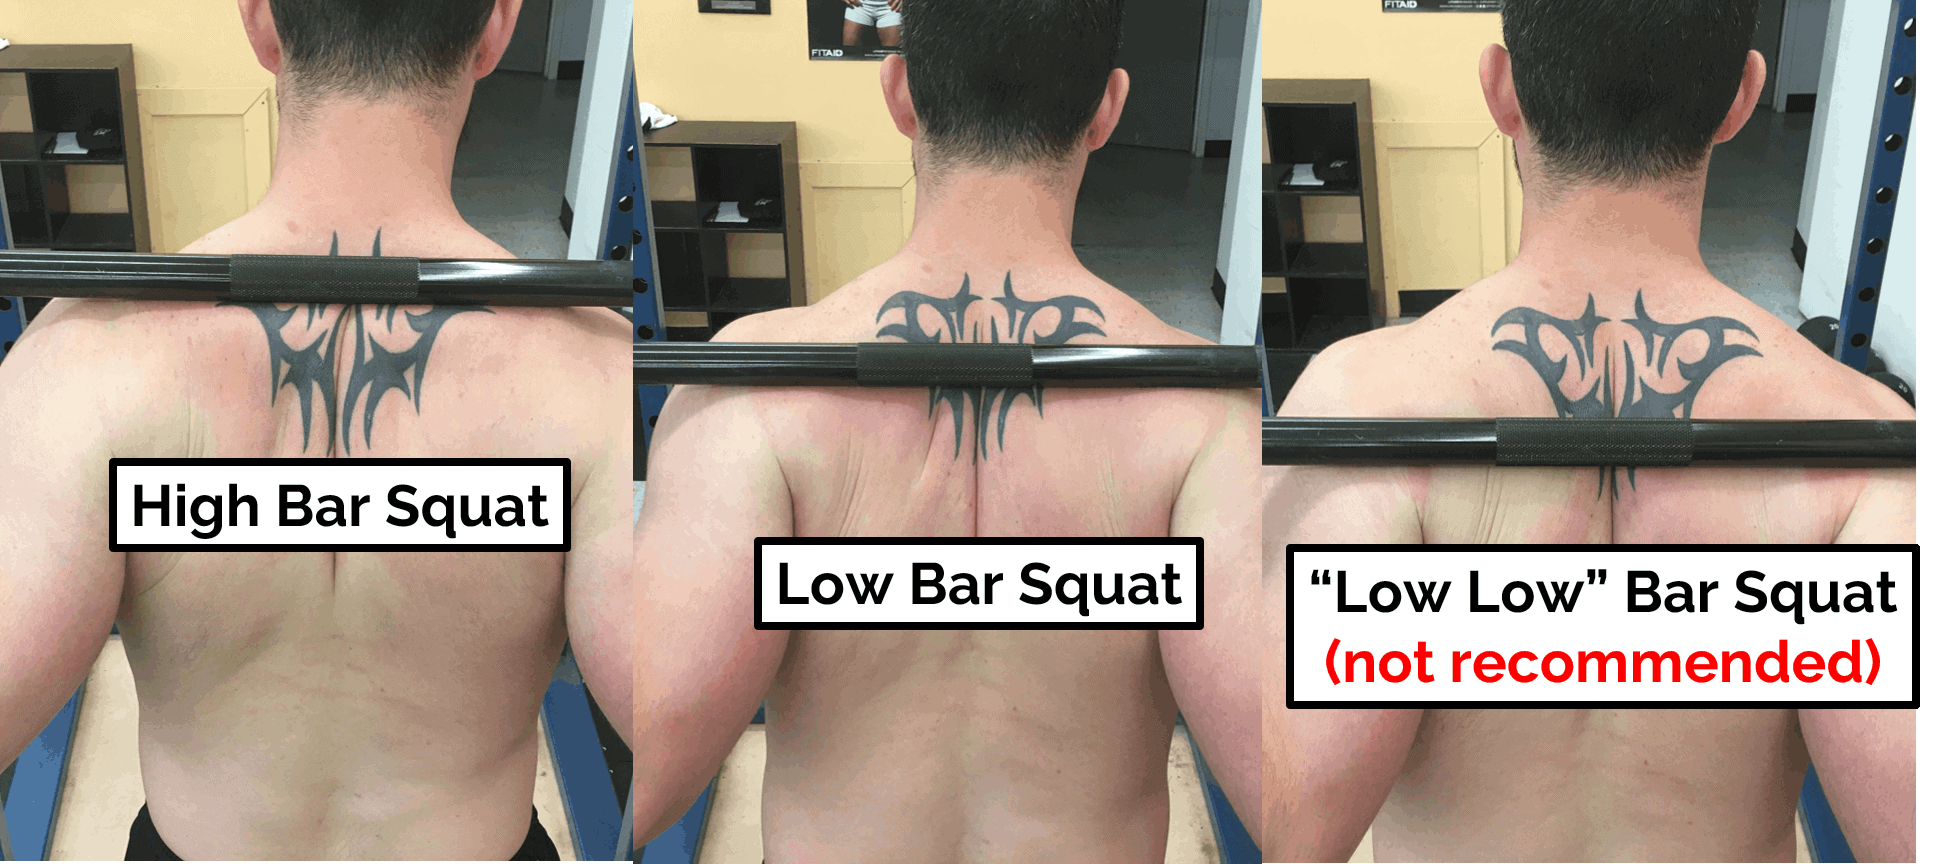 low low bar squat elbow pain during squats